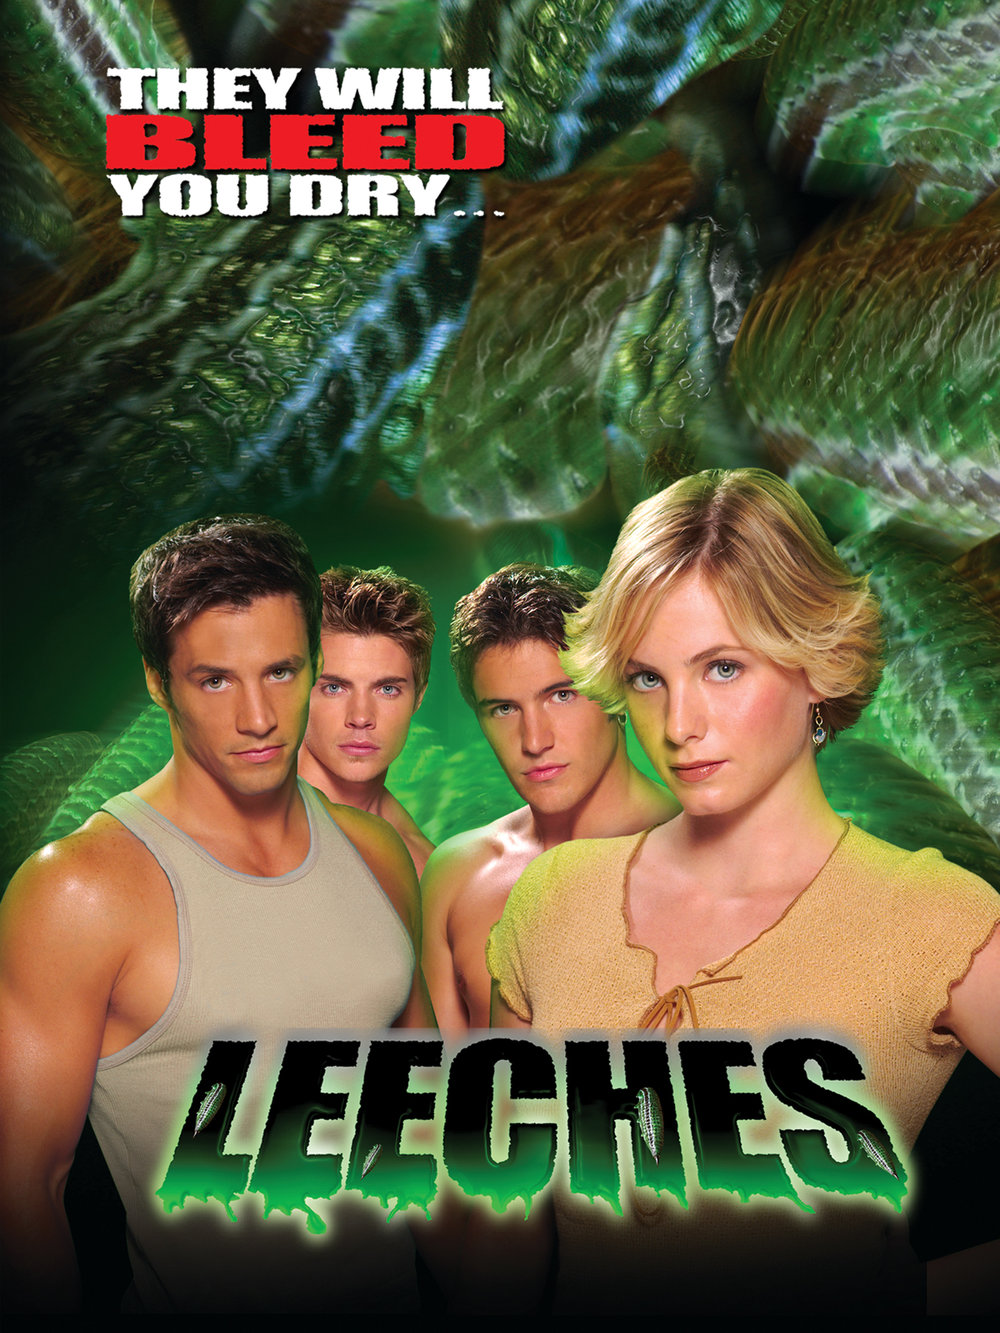 Here-Leeches-Full-Image-en-US.jpg